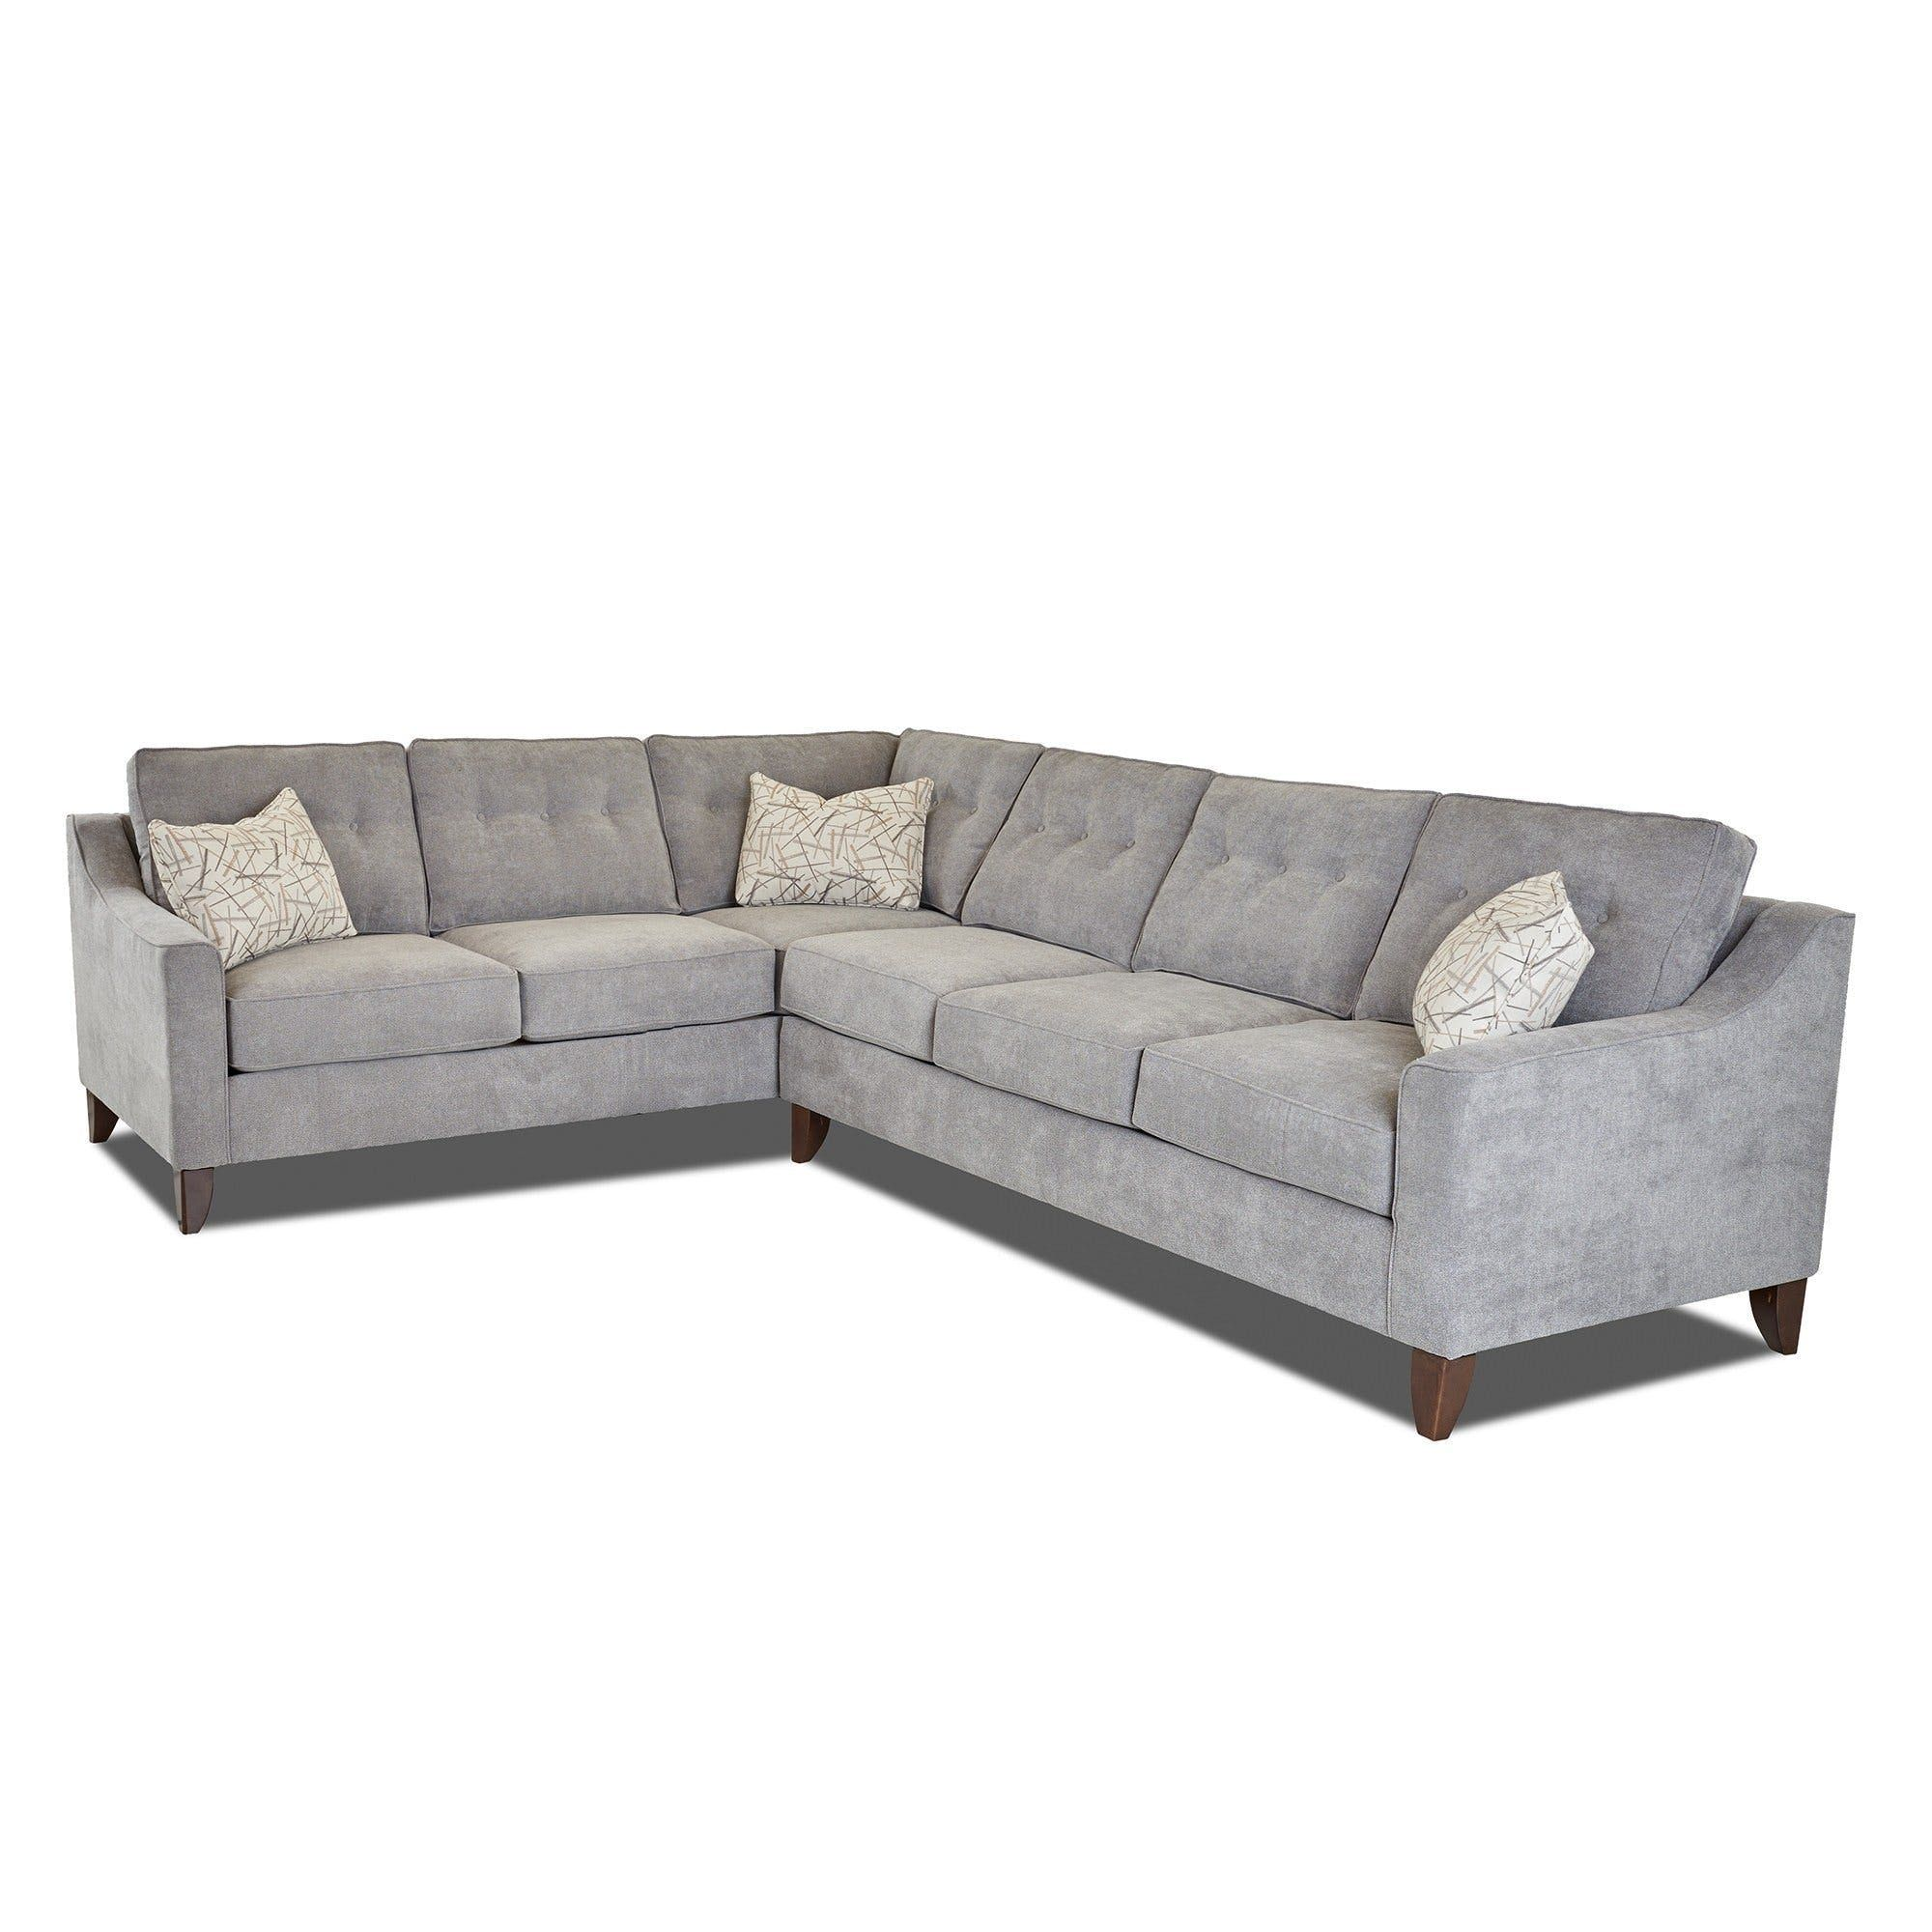 Audrina 2 Piece Sectional Bernie Phyl S Furniture By